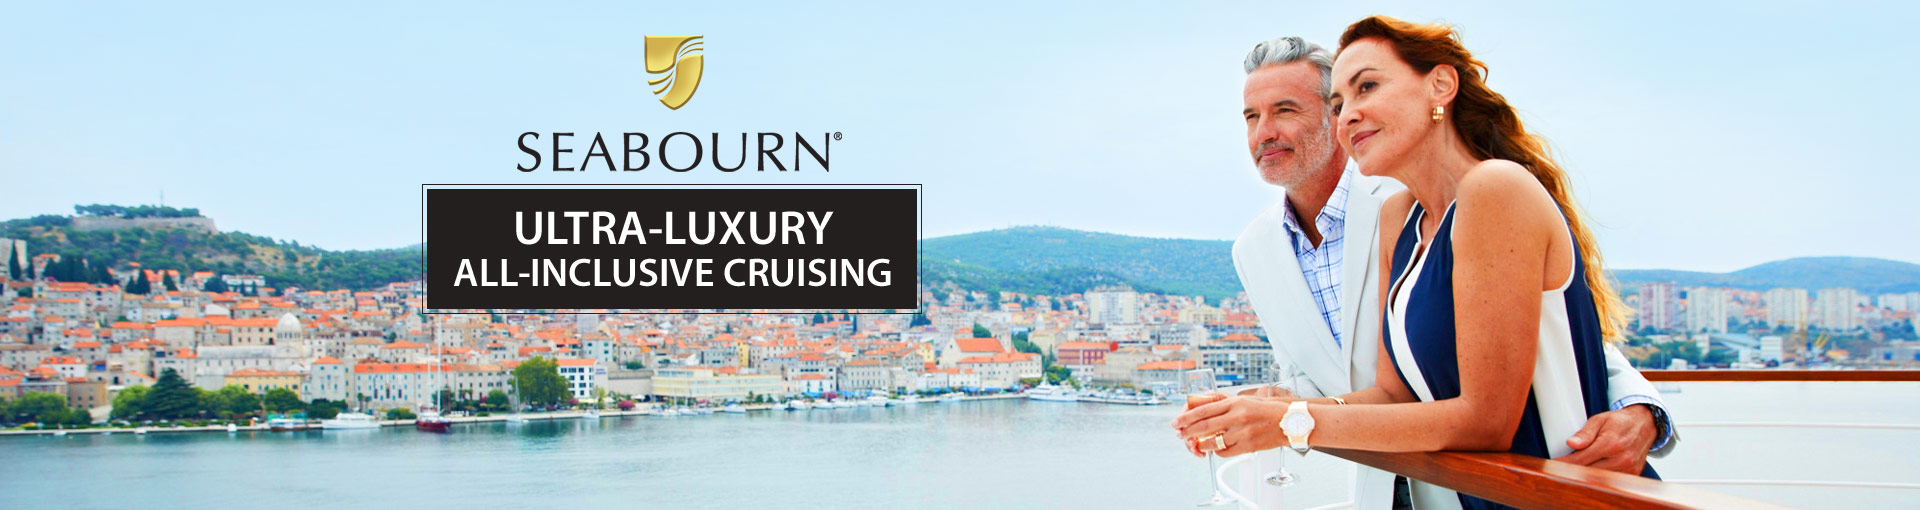 Seabourn Cruise Line: Ultra-Luxury All-Inclusive Cruising